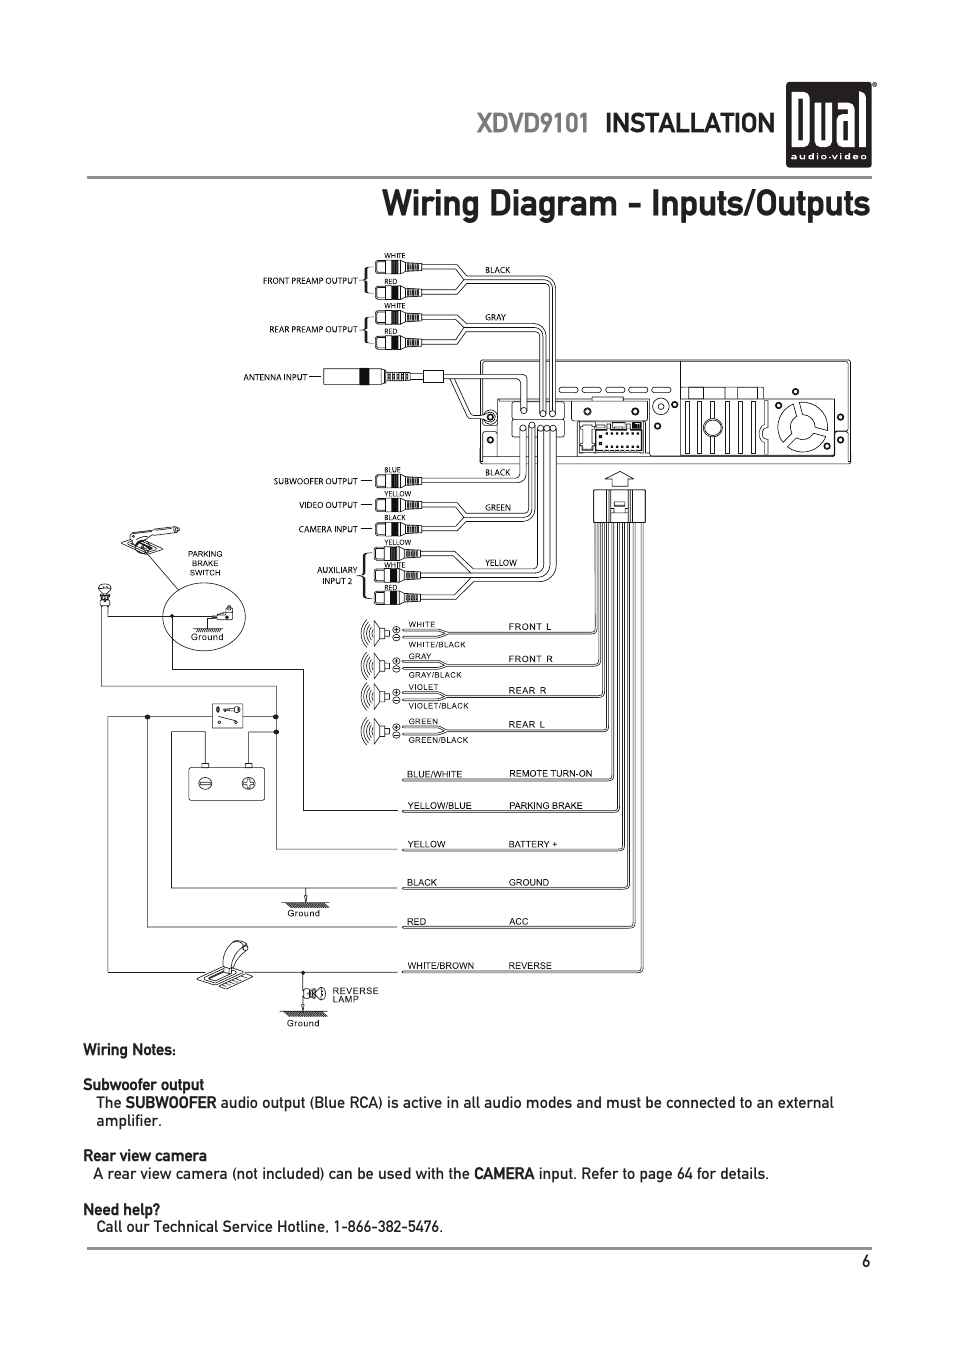 Wiring Diagram  Outputs  Xdvd9101 Installation